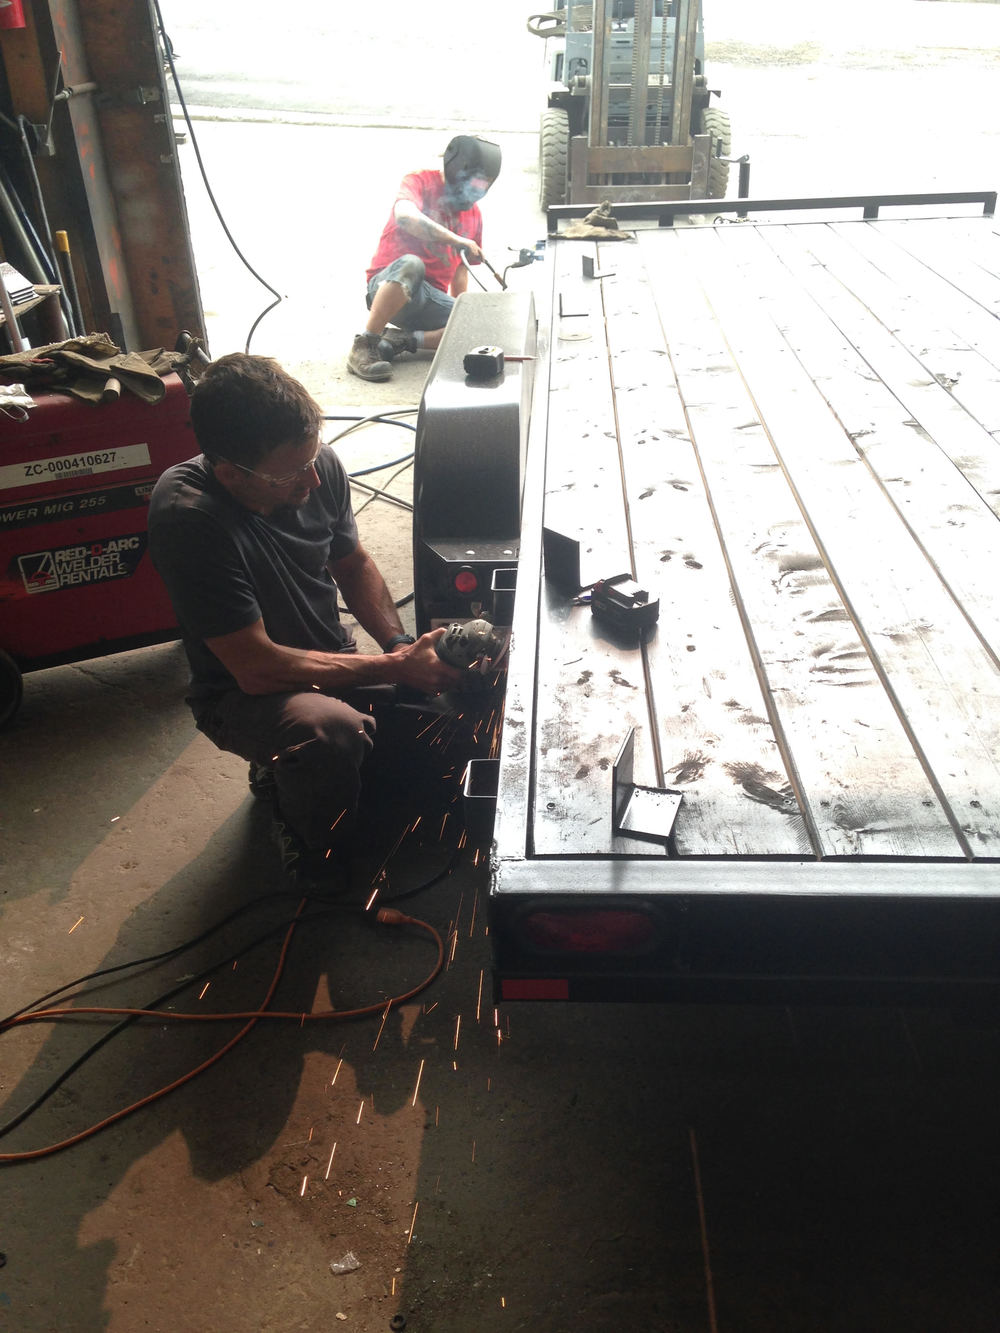 Our lead builder Brad putting some finishing touches on the trailer.